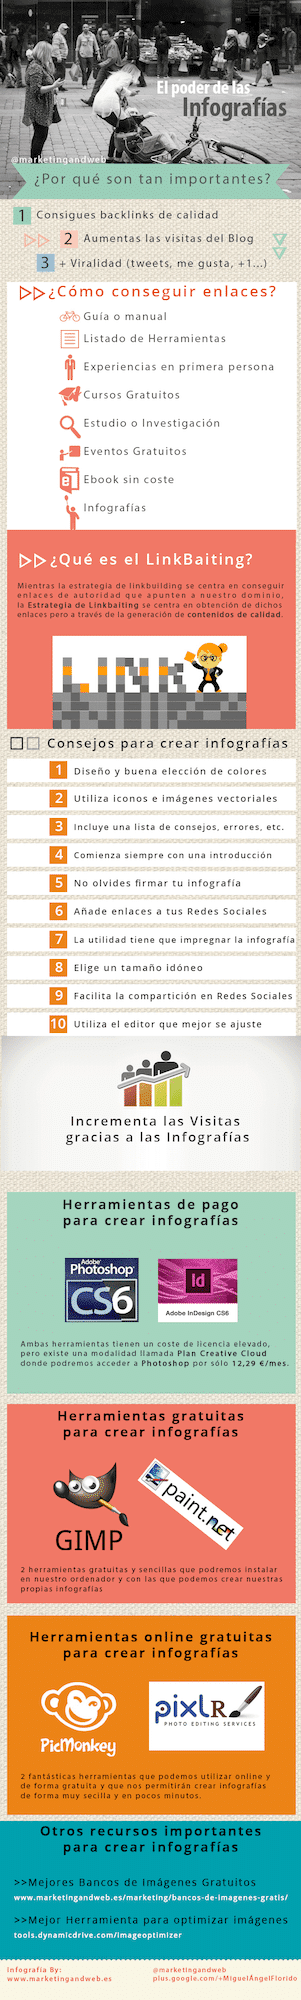 linkbaiting infografías seo